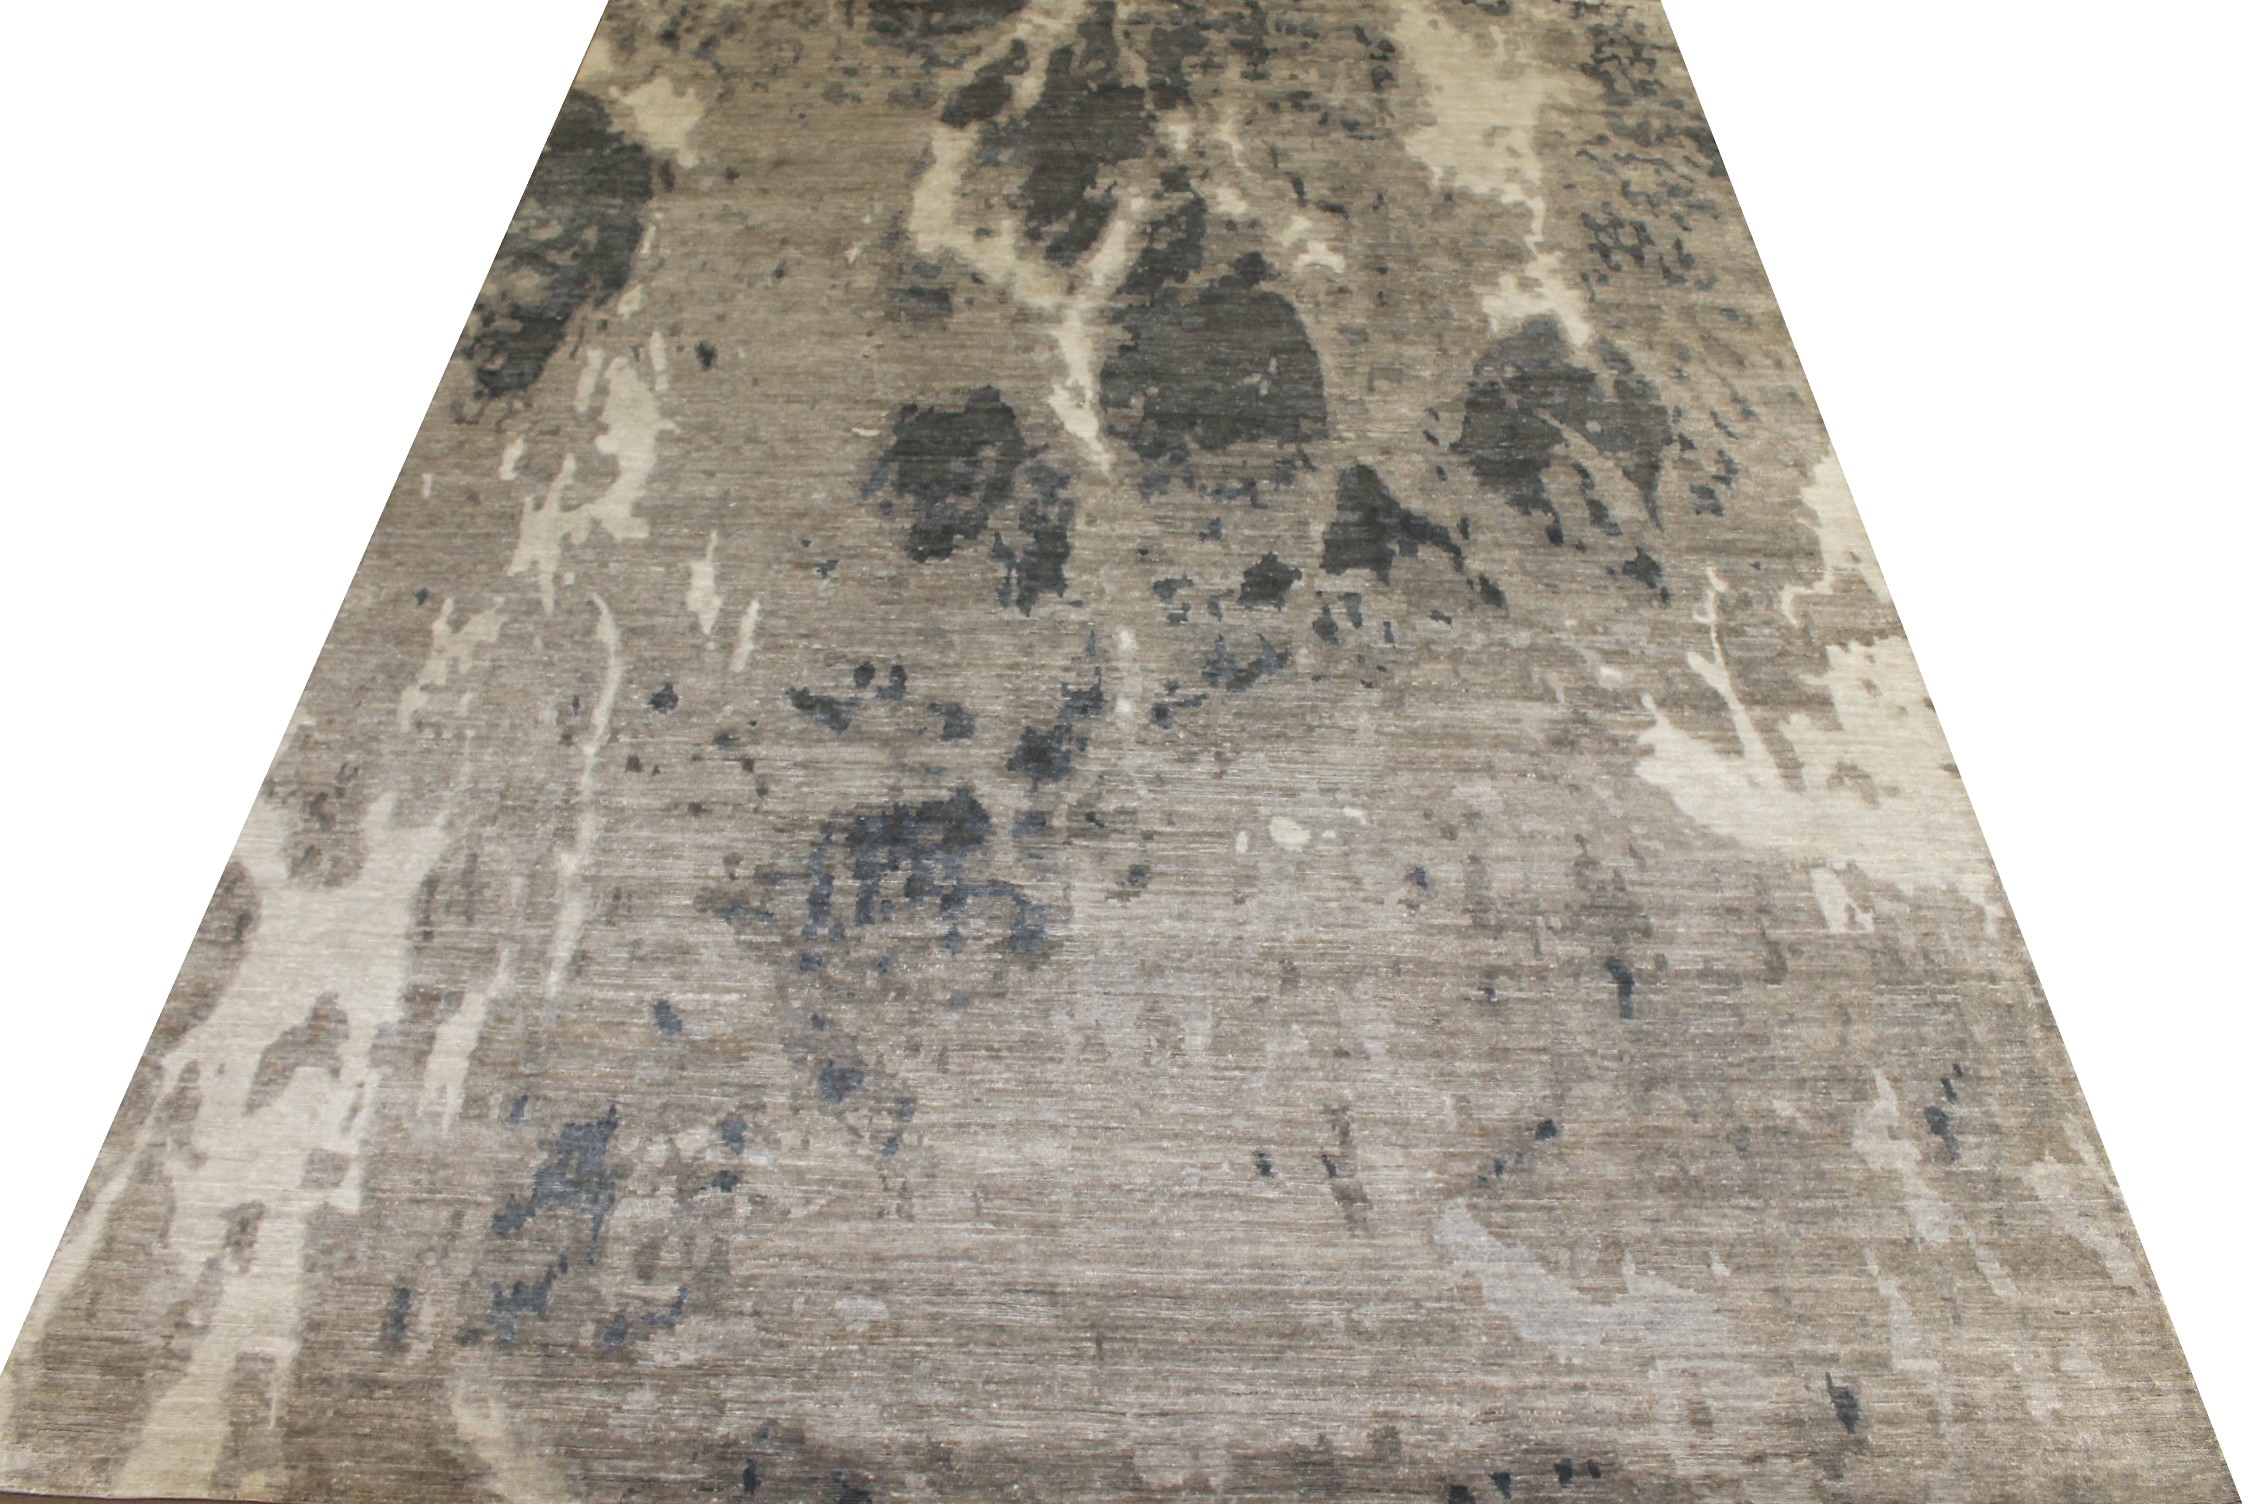 10x14 Modern Hand Knotted Wool & Viscose Area Rug - MR025553